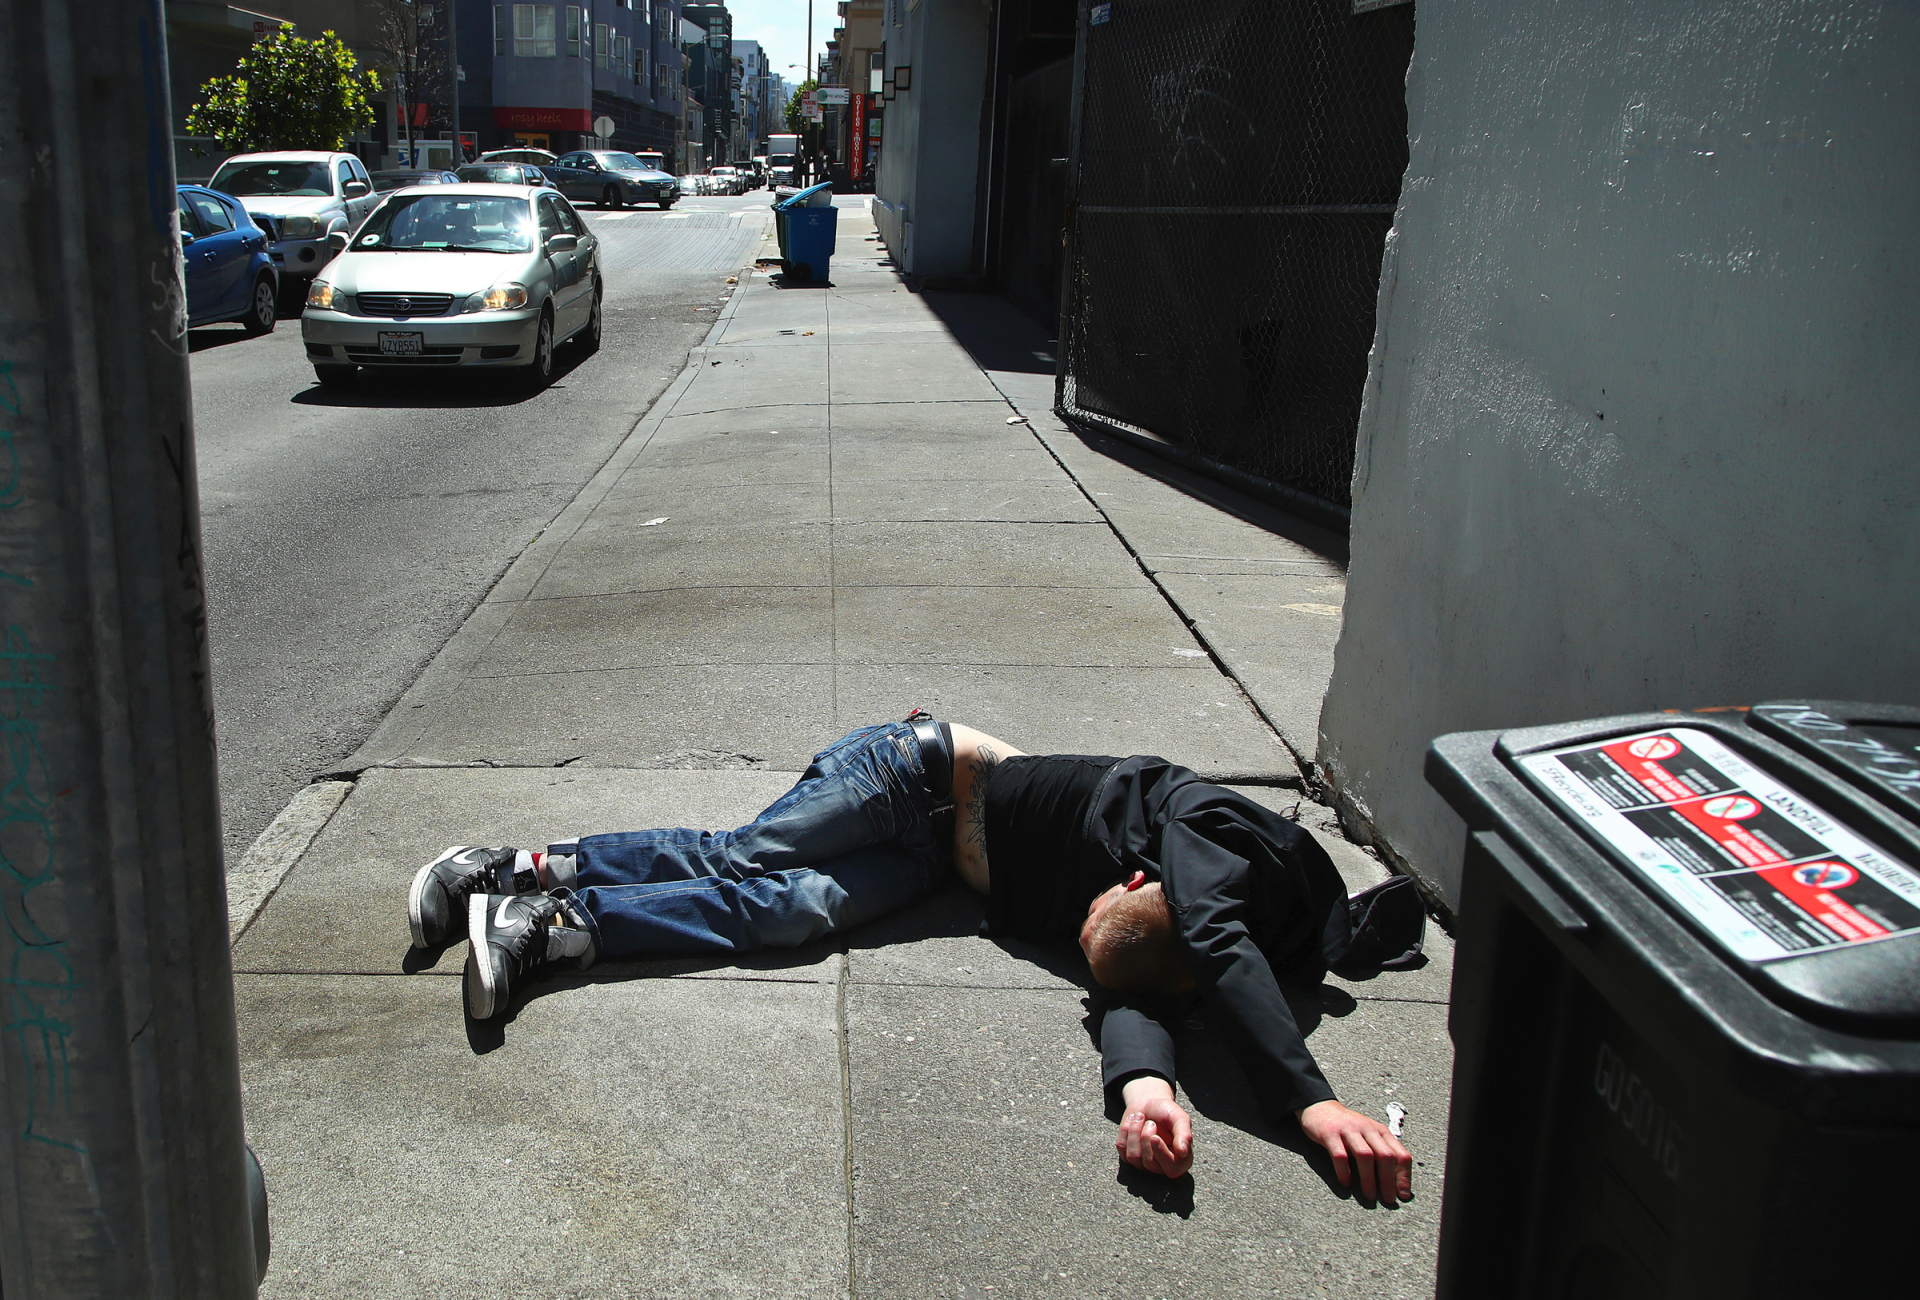 Westlake Legal Group ContentBroker_contentid-9e564610dafd4a0fbaa3c73ac067915f Homelessness in San Francisco: Here are the statistics Nick Givas fox-news/travel/vacation-destinations/san-francisco fox-news/topic/homeless-crisis fox news fnc/us fnc c1408b34-a1d7-5db5-bbb7-c50bbc848c92 article